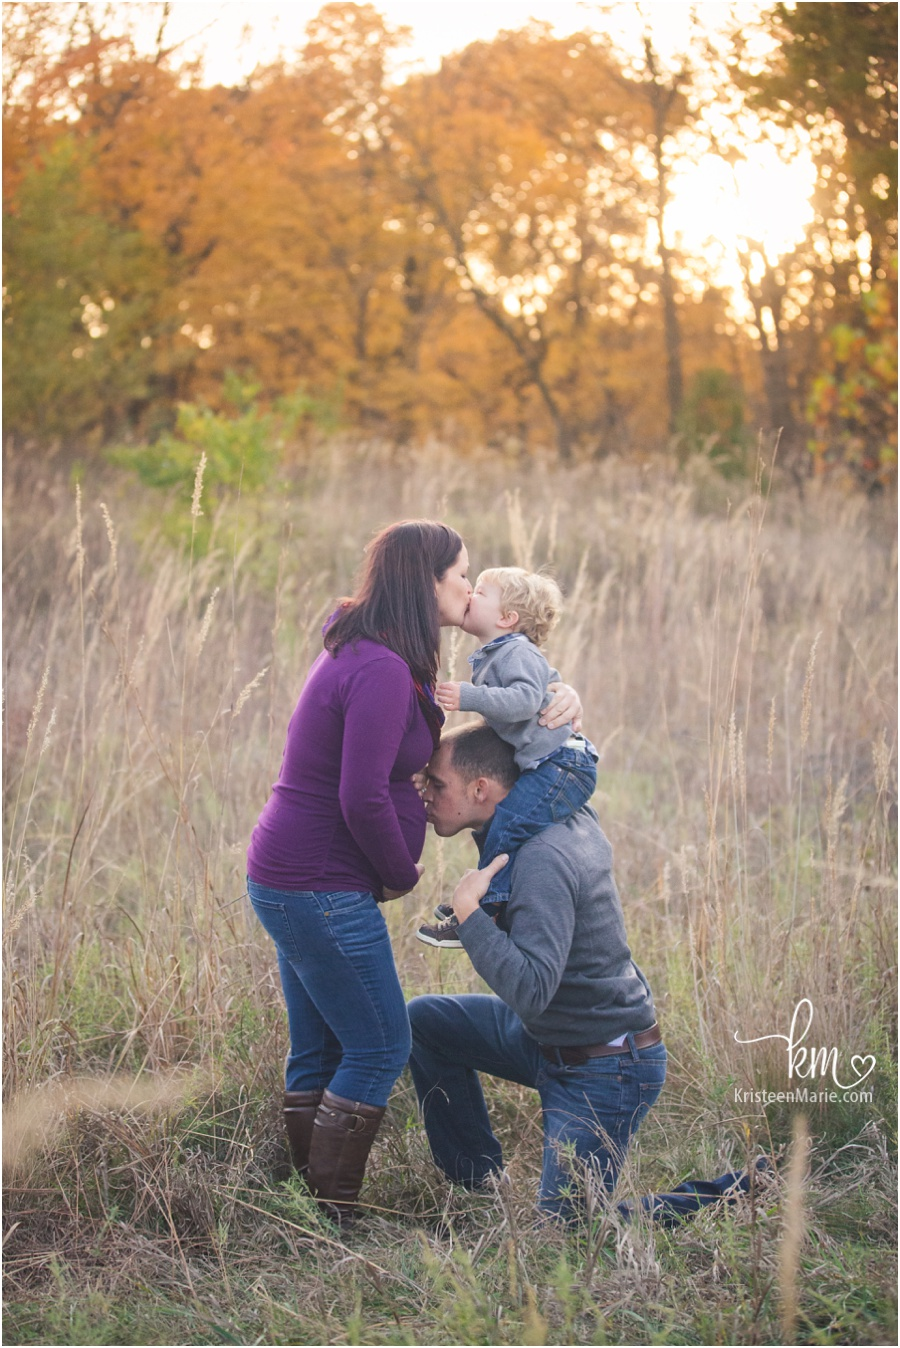 kissing picture during maternity session photography